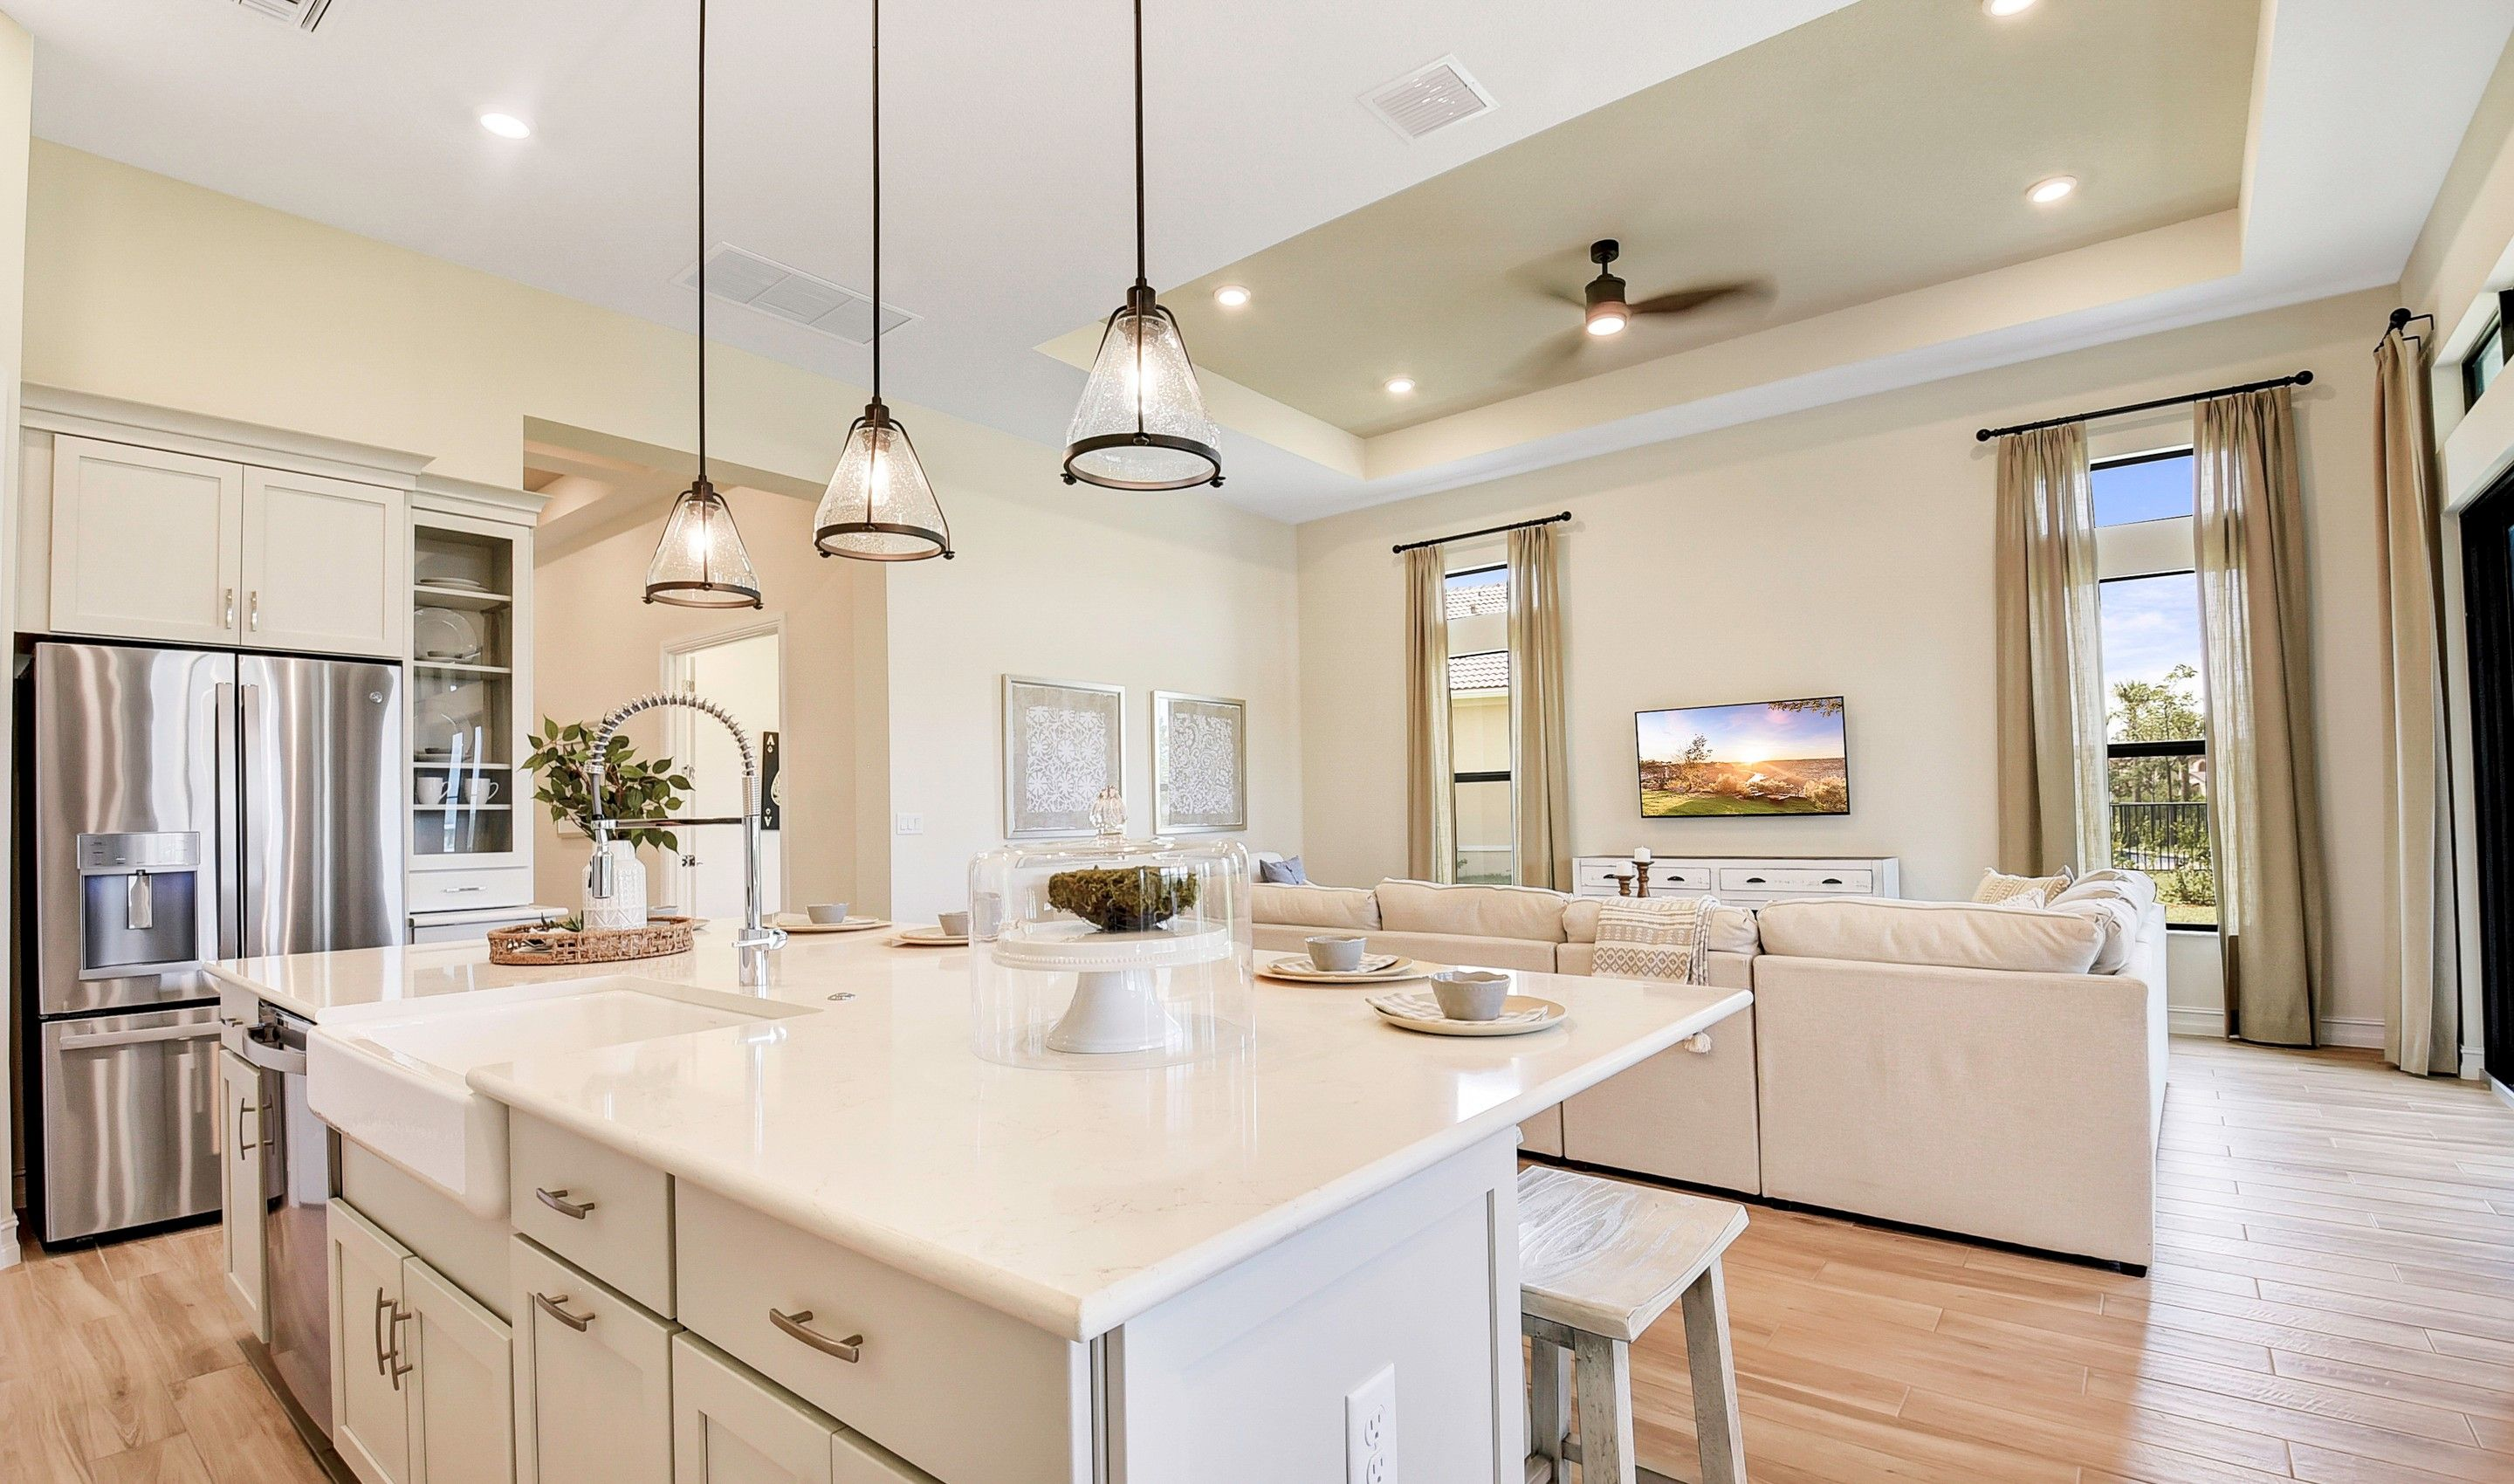 Kitchen featured in the Cerelia By K. Hovnanian's® Four Seasons